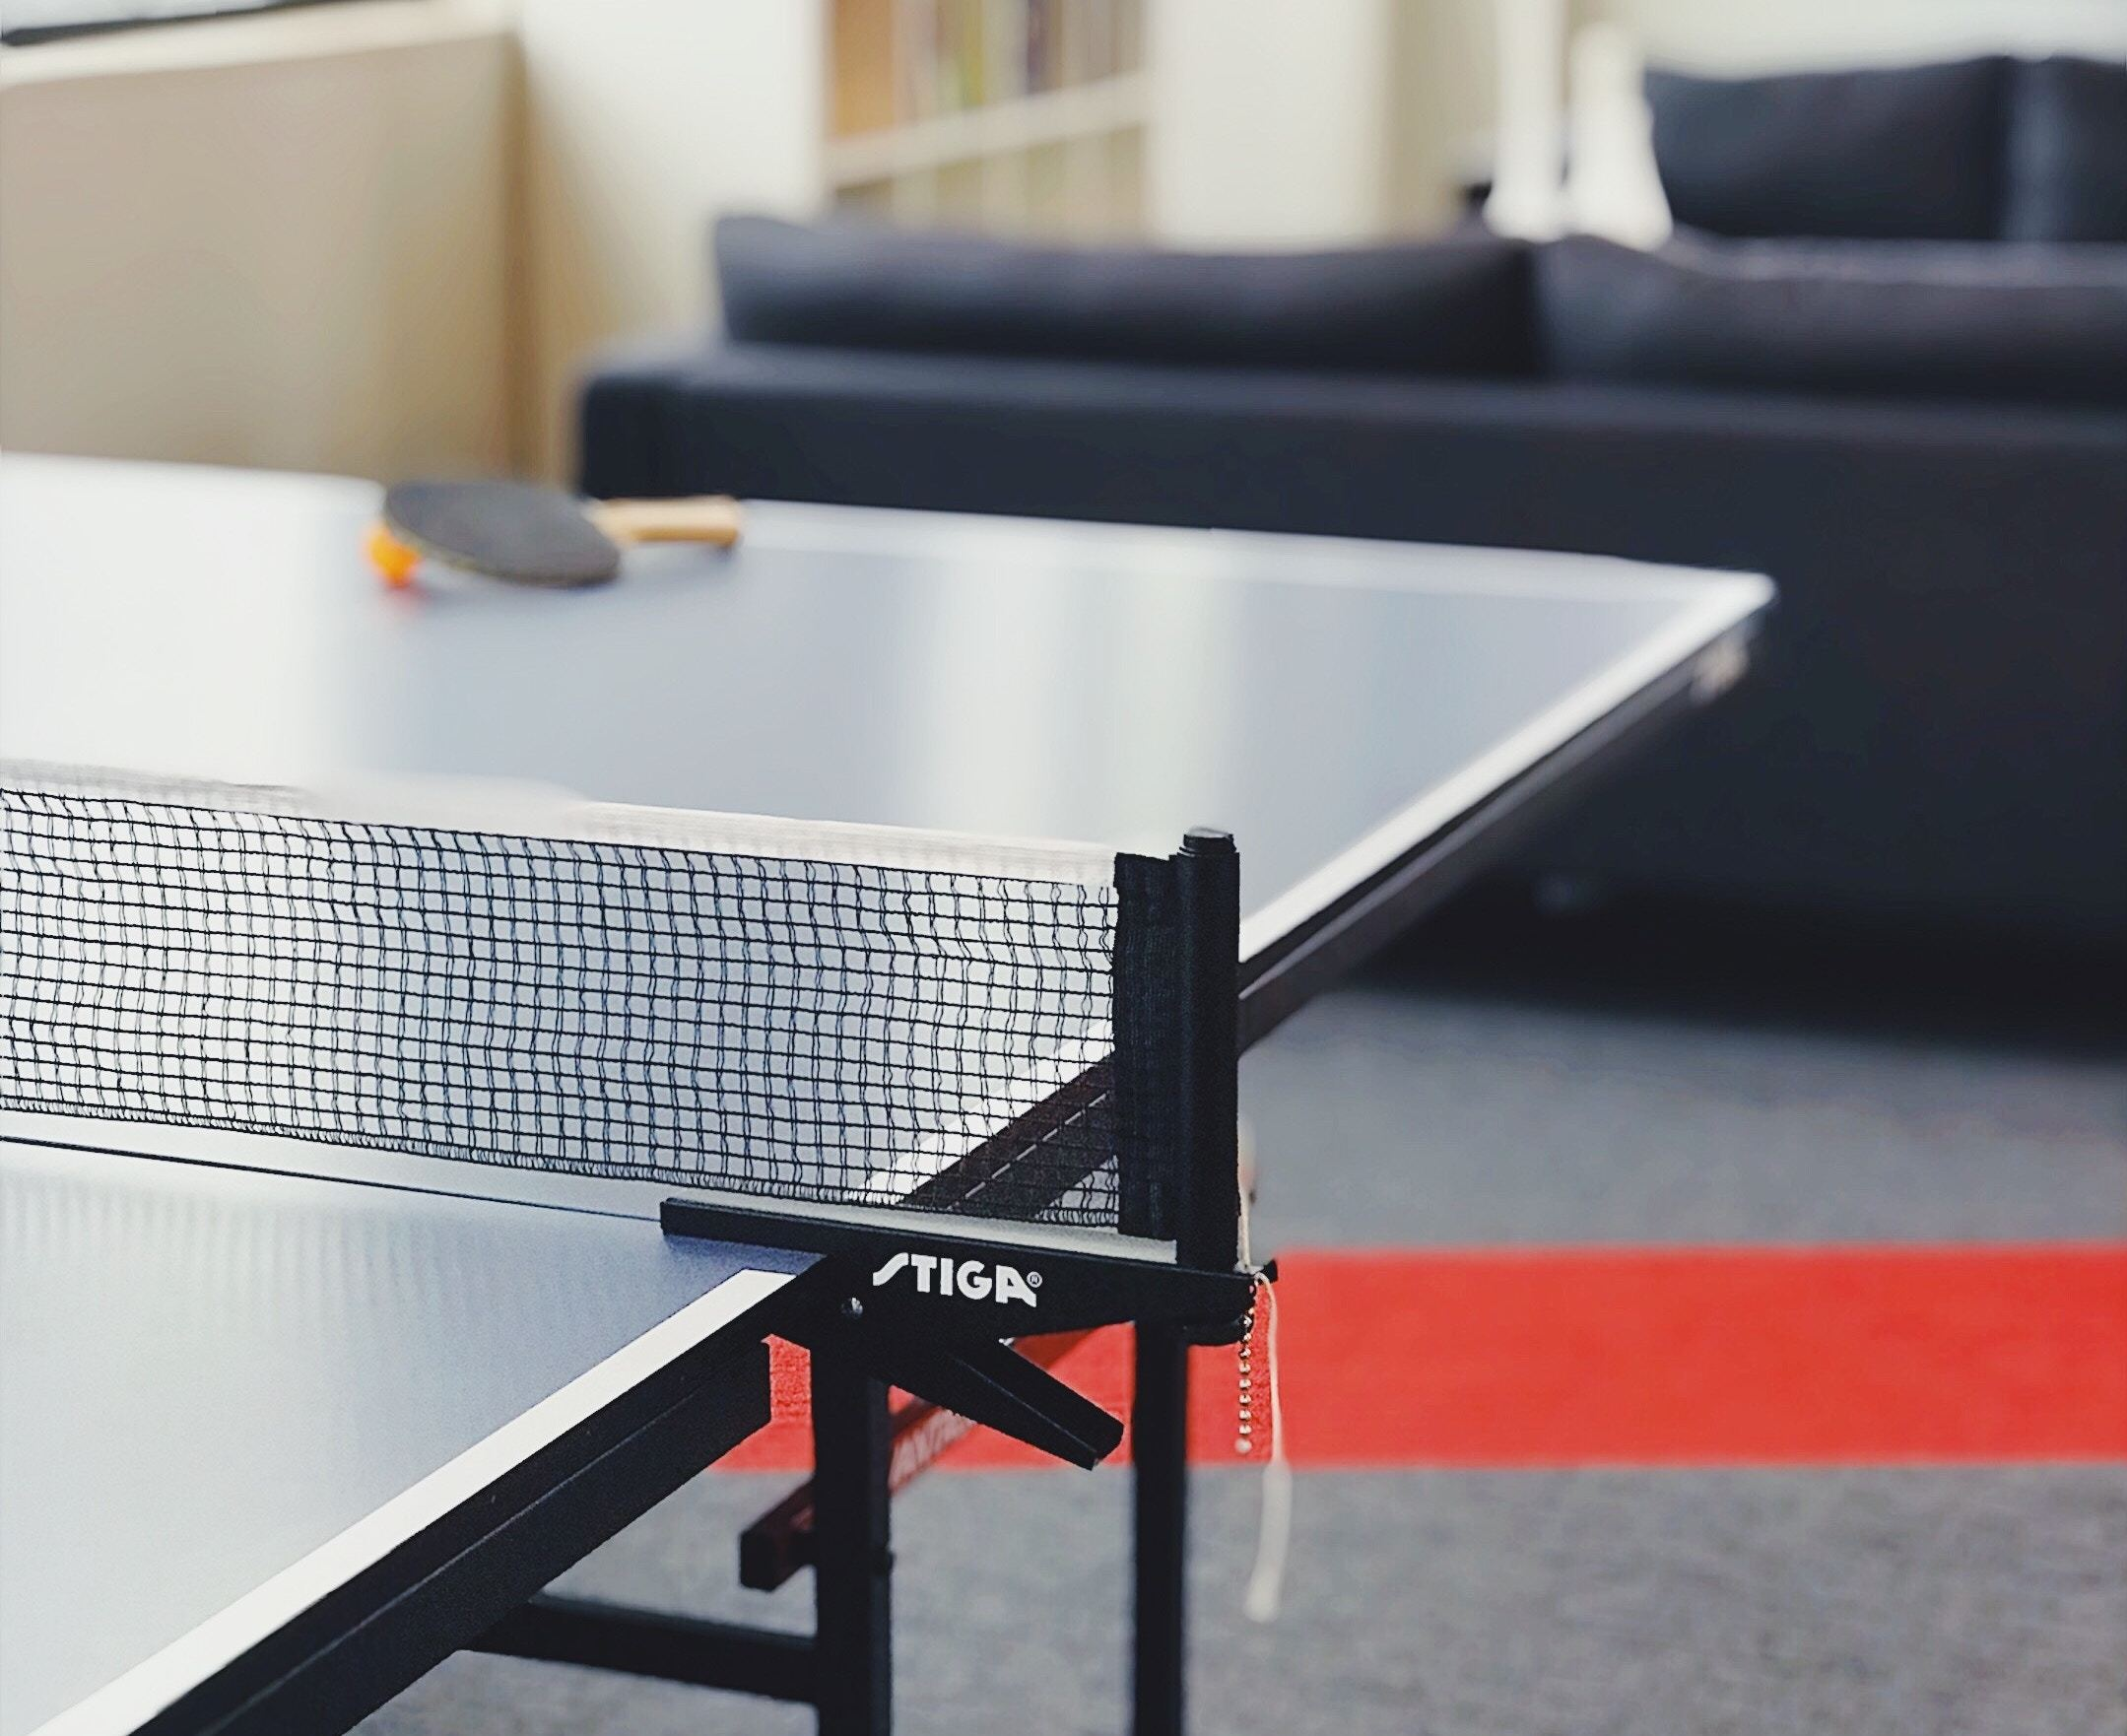 Ping Pong table in a breakroom